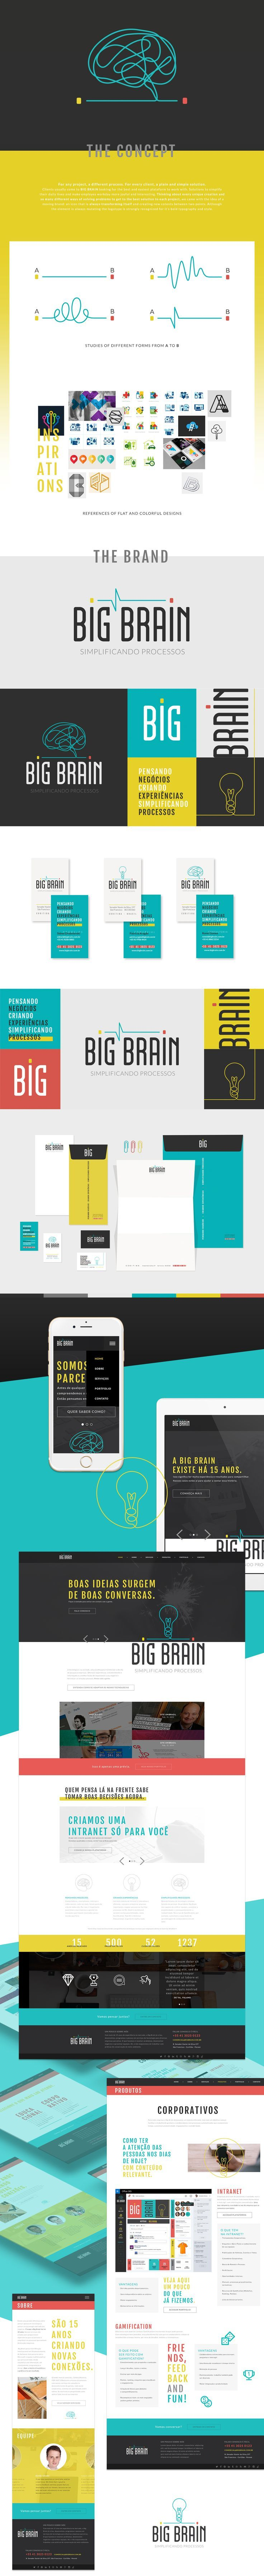 Visual identity and digital solutions developed for Big Brain a business thinking and intelligent technology